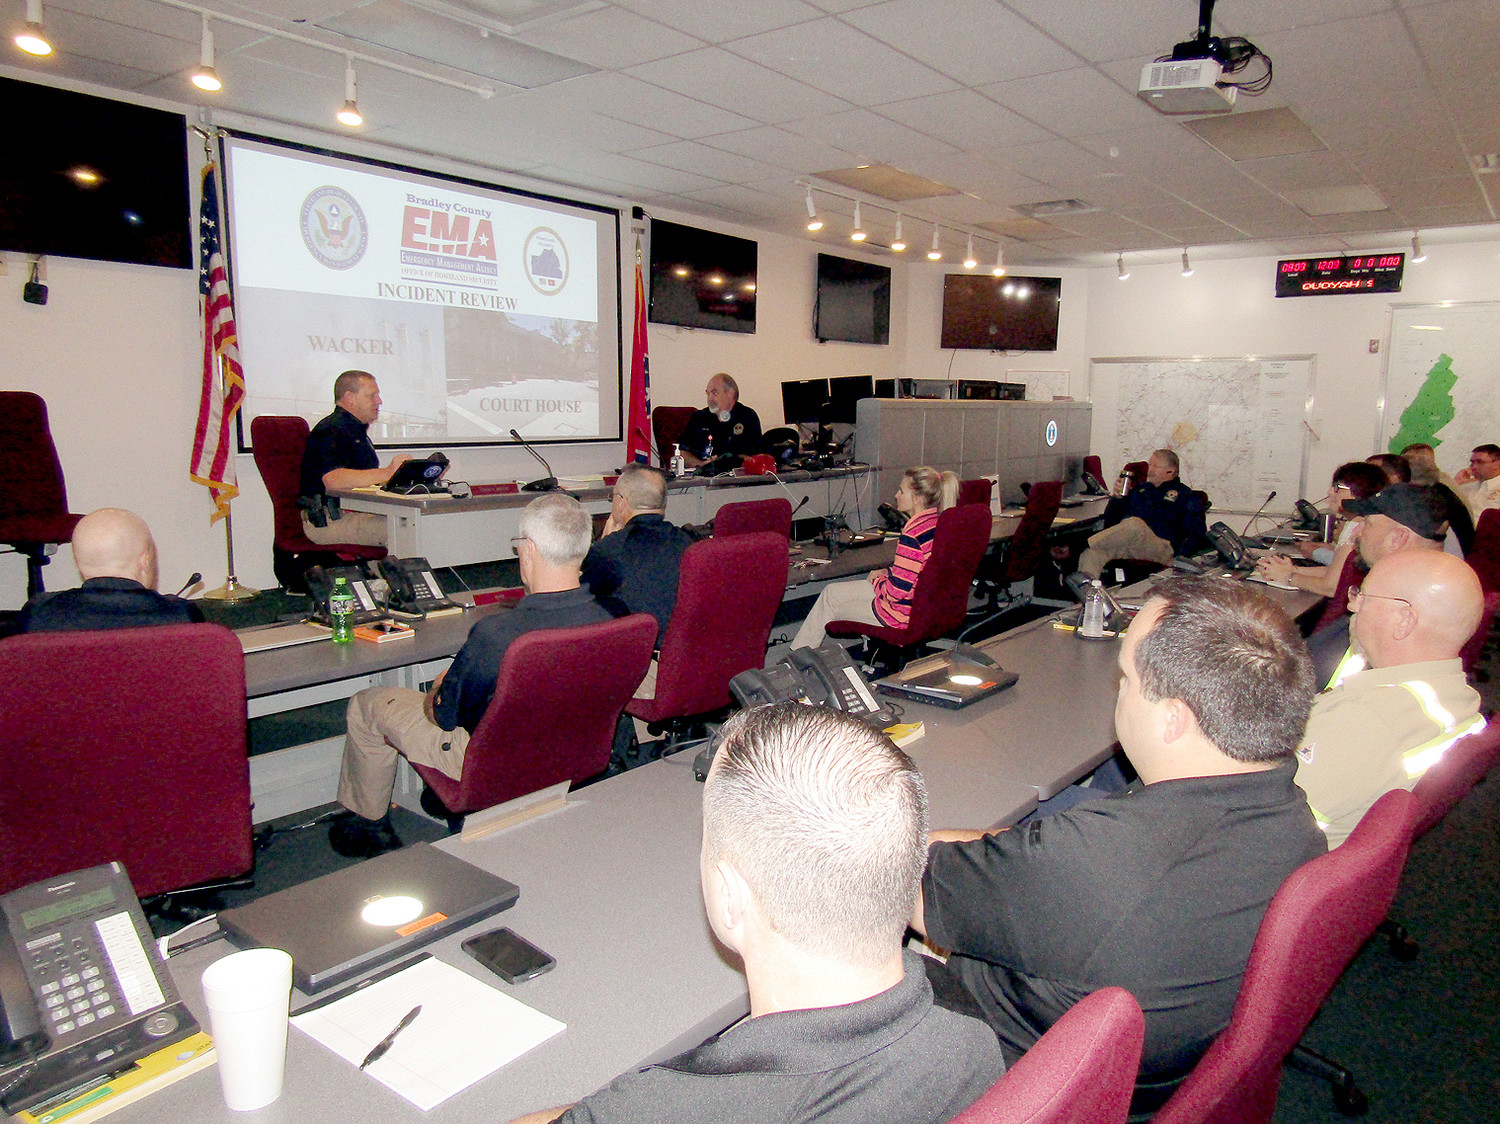 Members of the county's emergency services and industries met at the Bradley County 911 Center to discuss recent emergency incidents, and how to better respond and inform the public when new ones transpire.